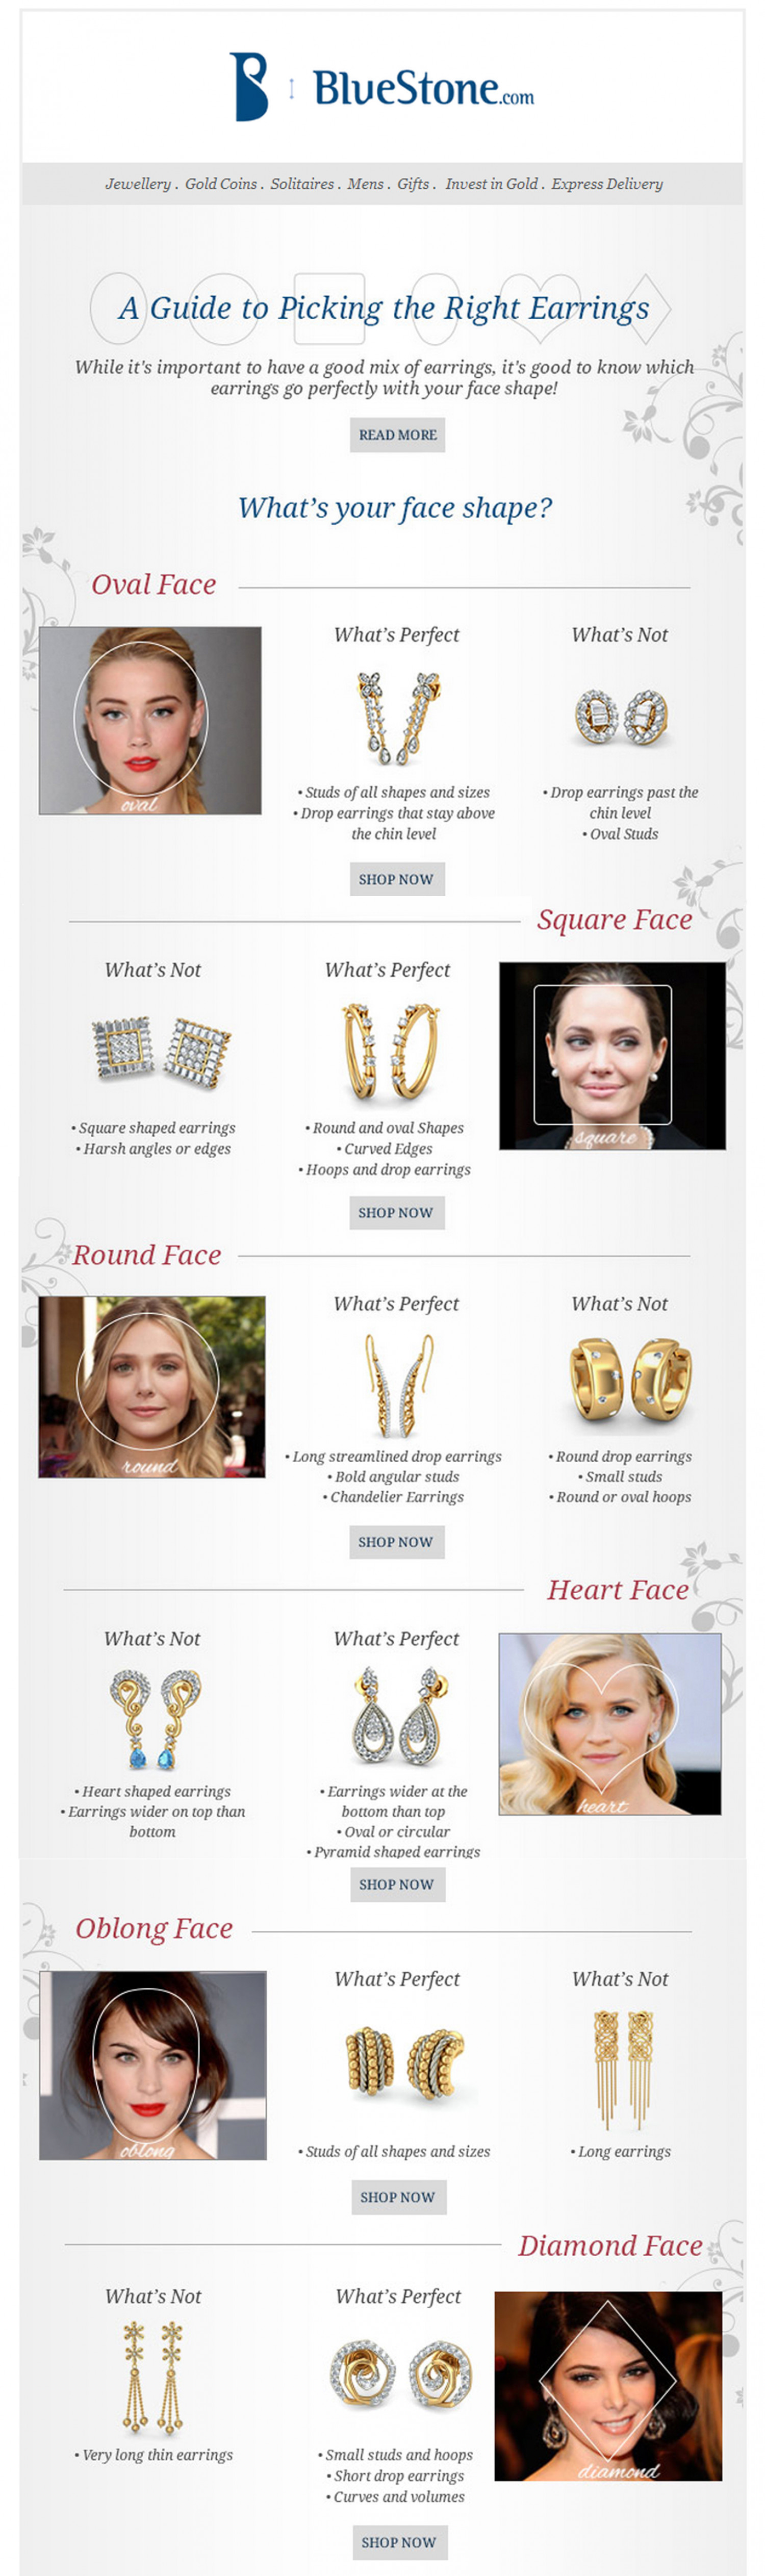 A Guide To Picking The Right Earrings Infographic